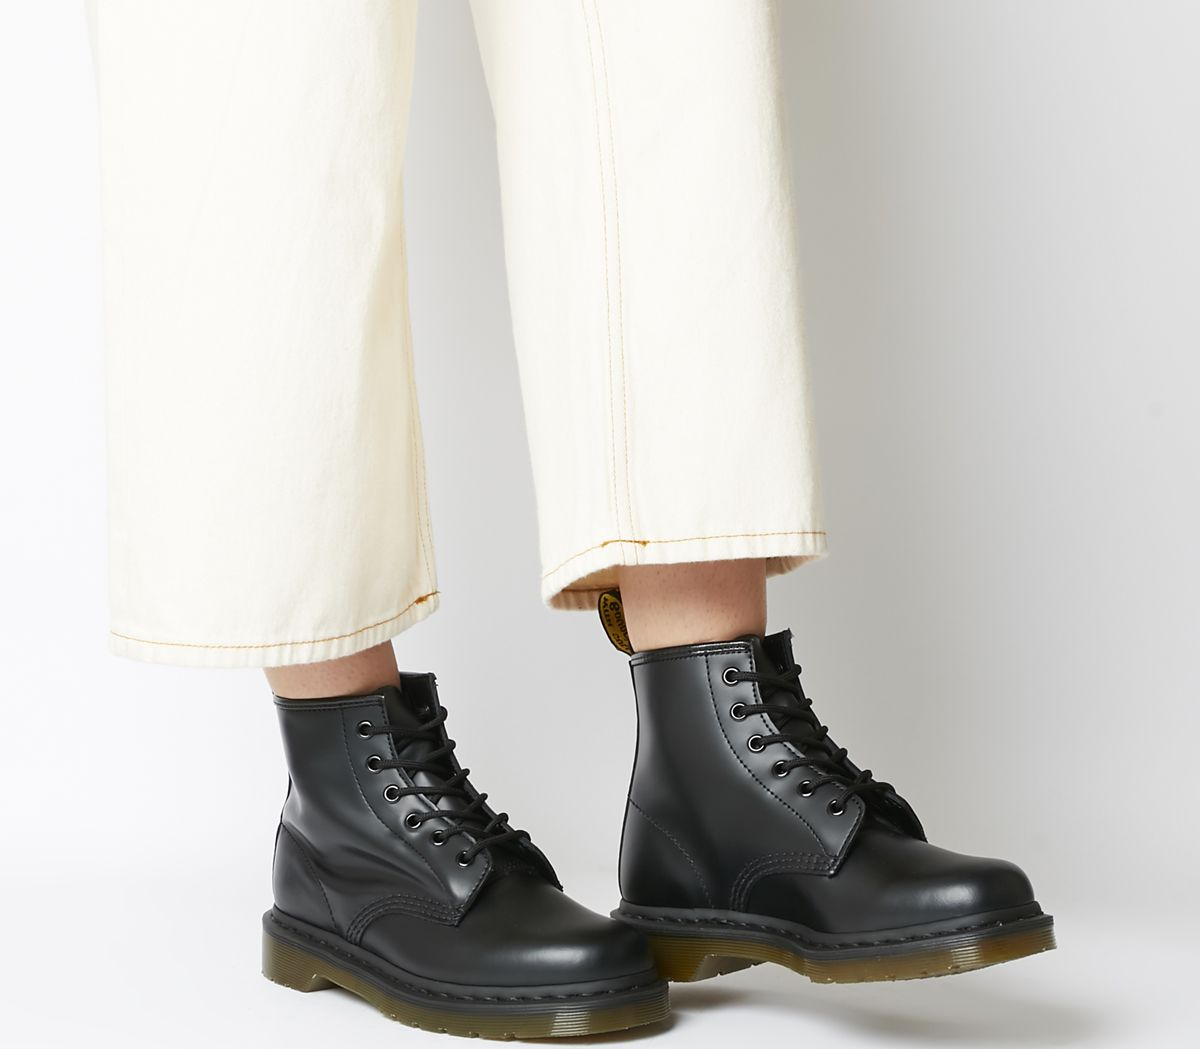 101 6 Eye Boots by Dr. Martens